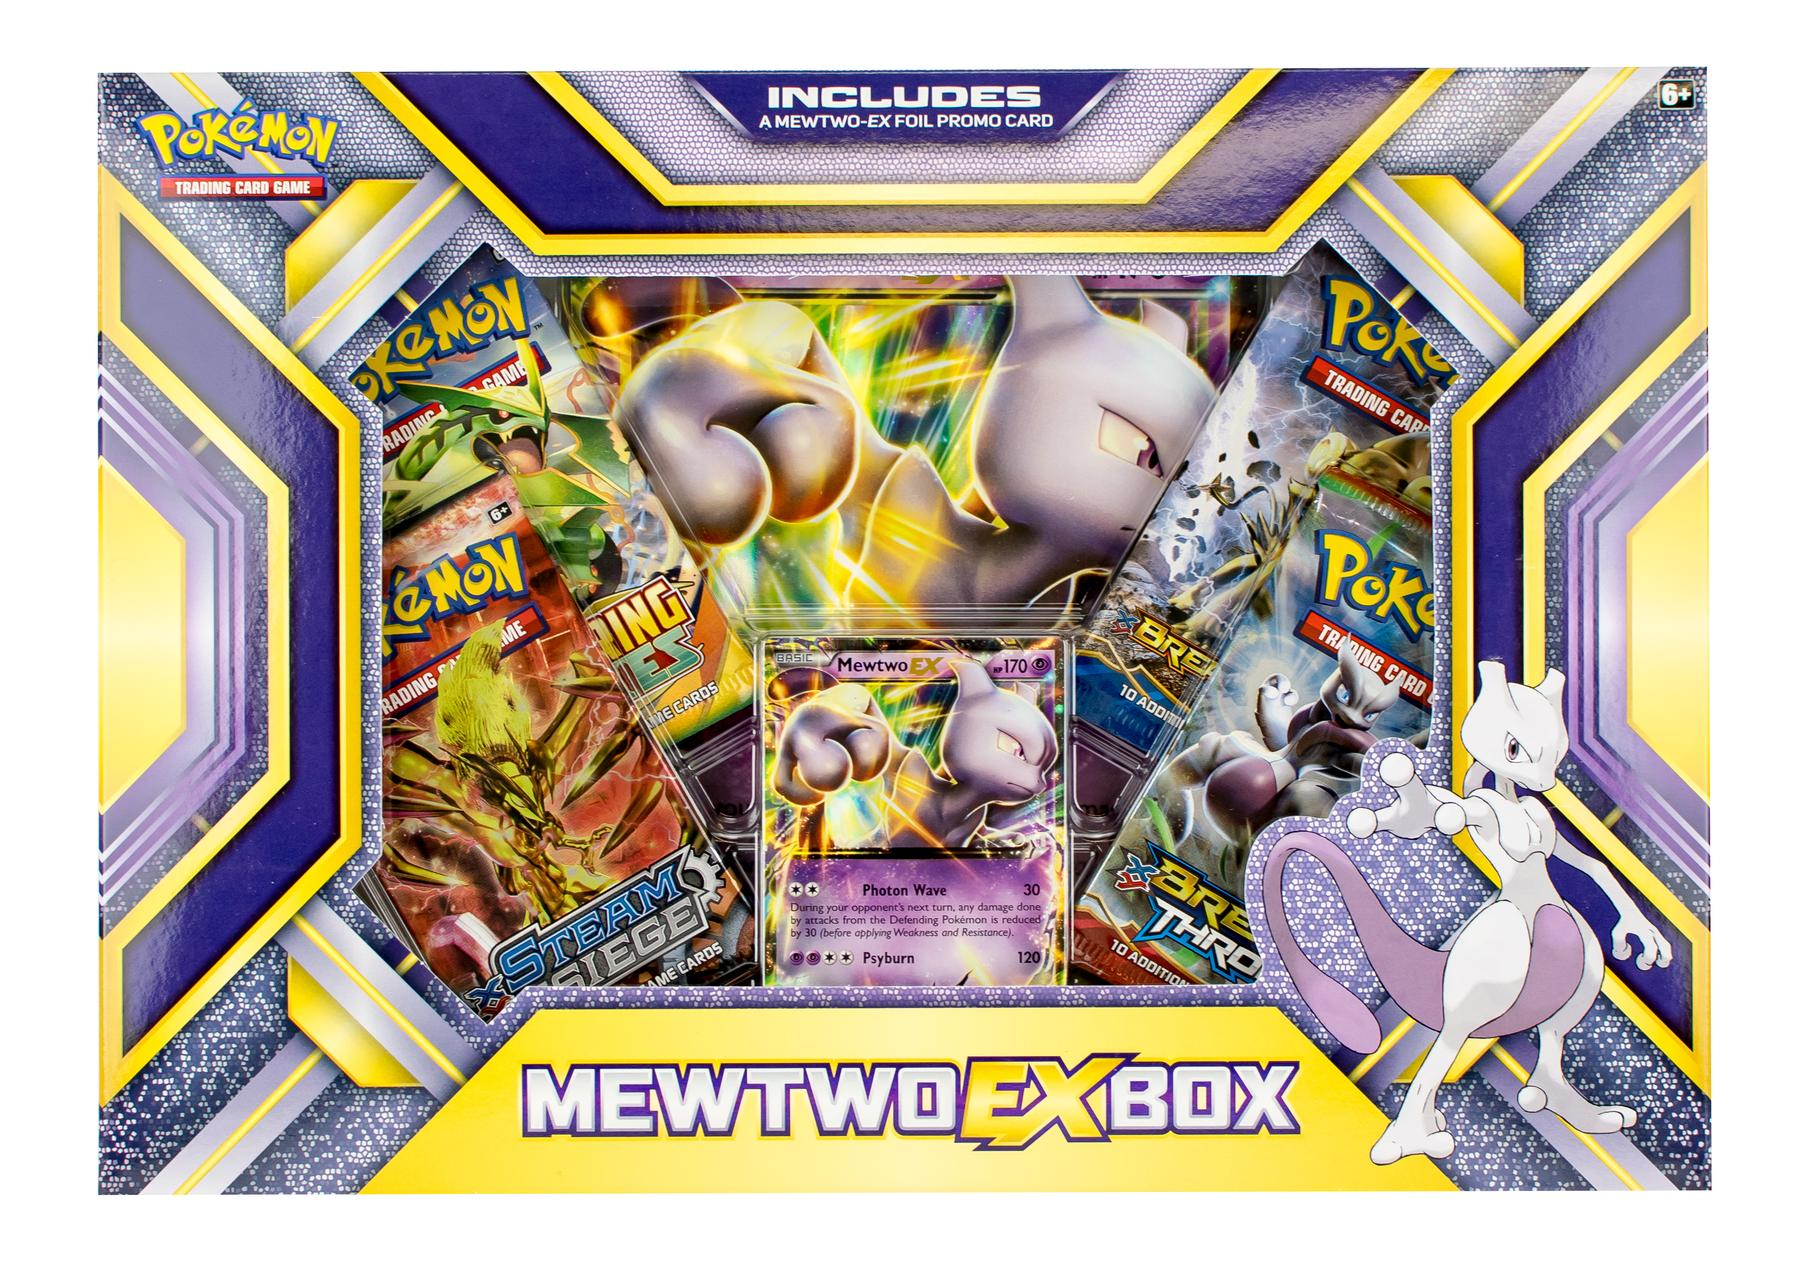 NEW POKEMON CARD DETECTIVE PIKACHU CASE FILE Box …